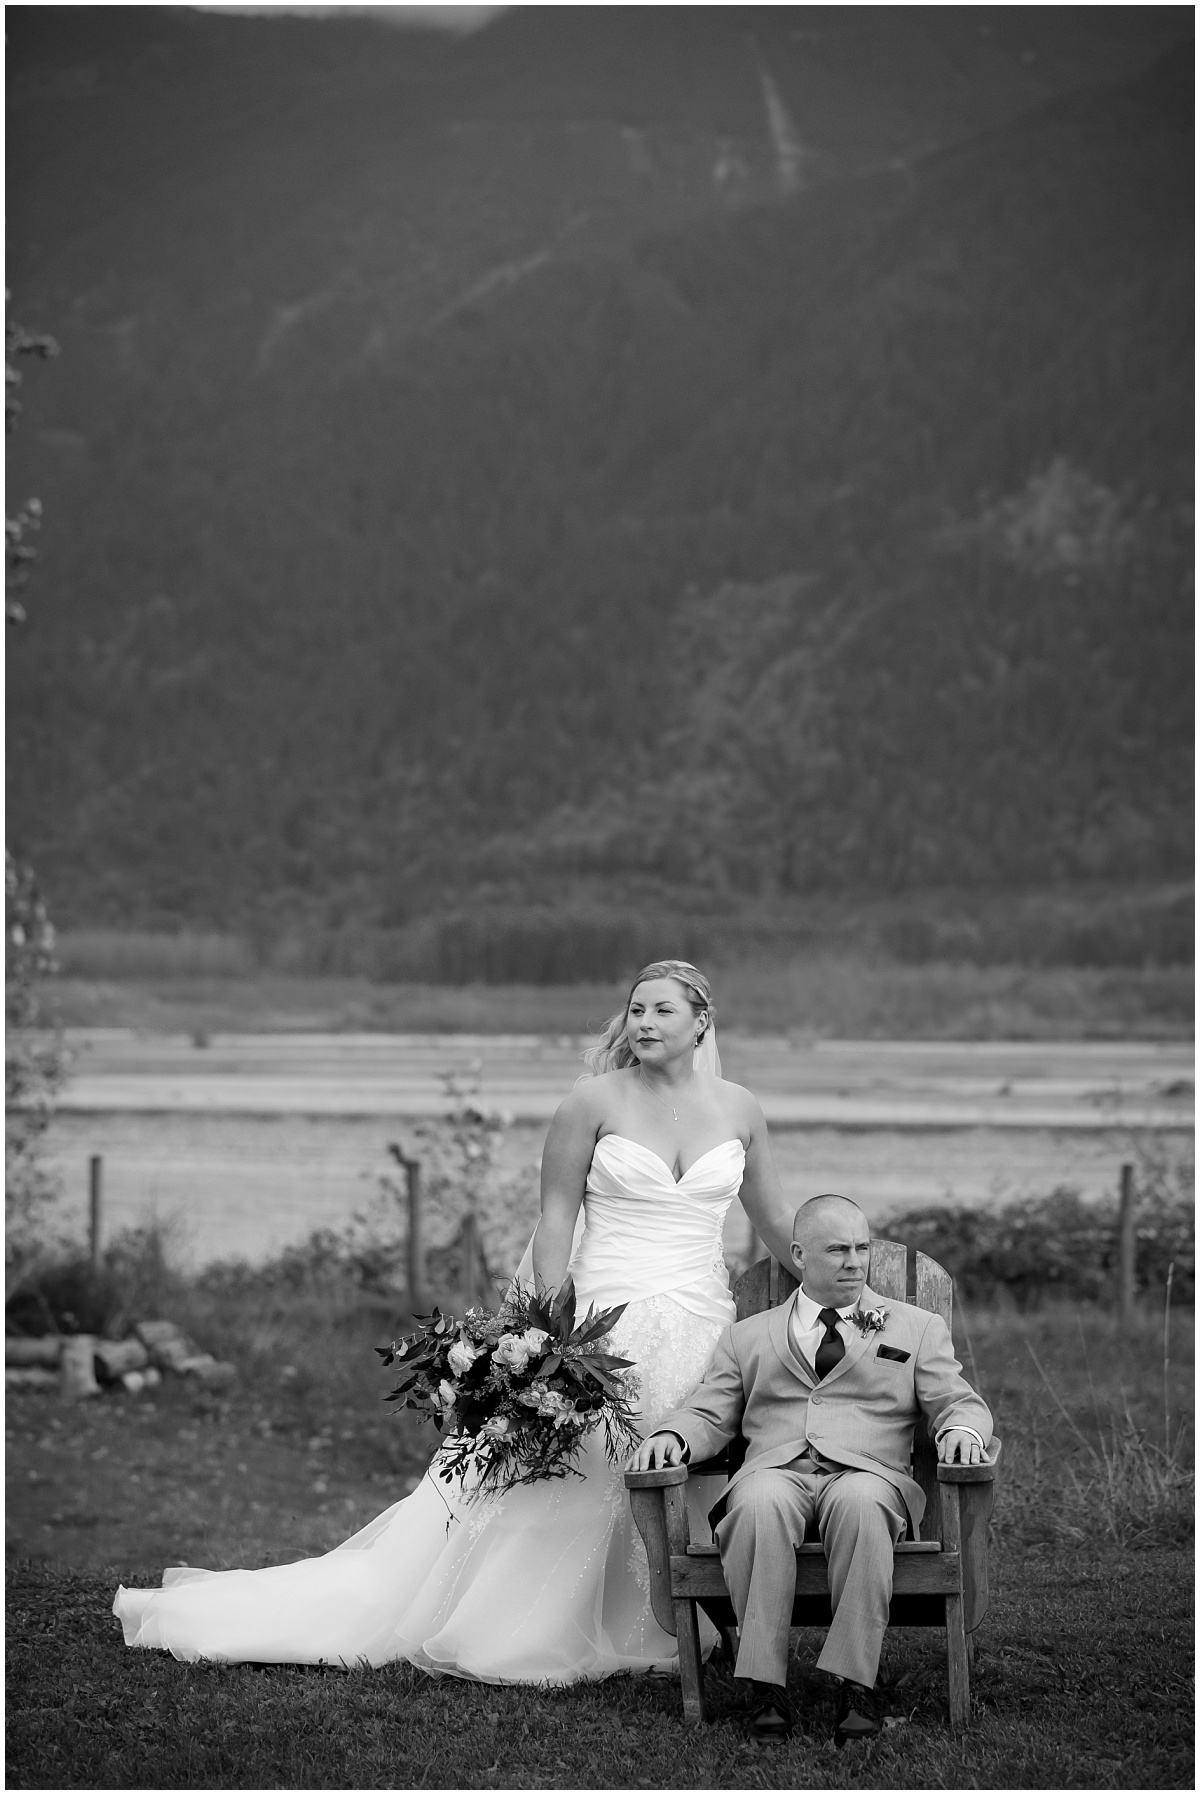 Amazing Day Photography - Fraser River Lodge Wedding - Fall Wedding - Fraser Valley Wedding Photographer - Langley Wedding Photographer (33).jpg